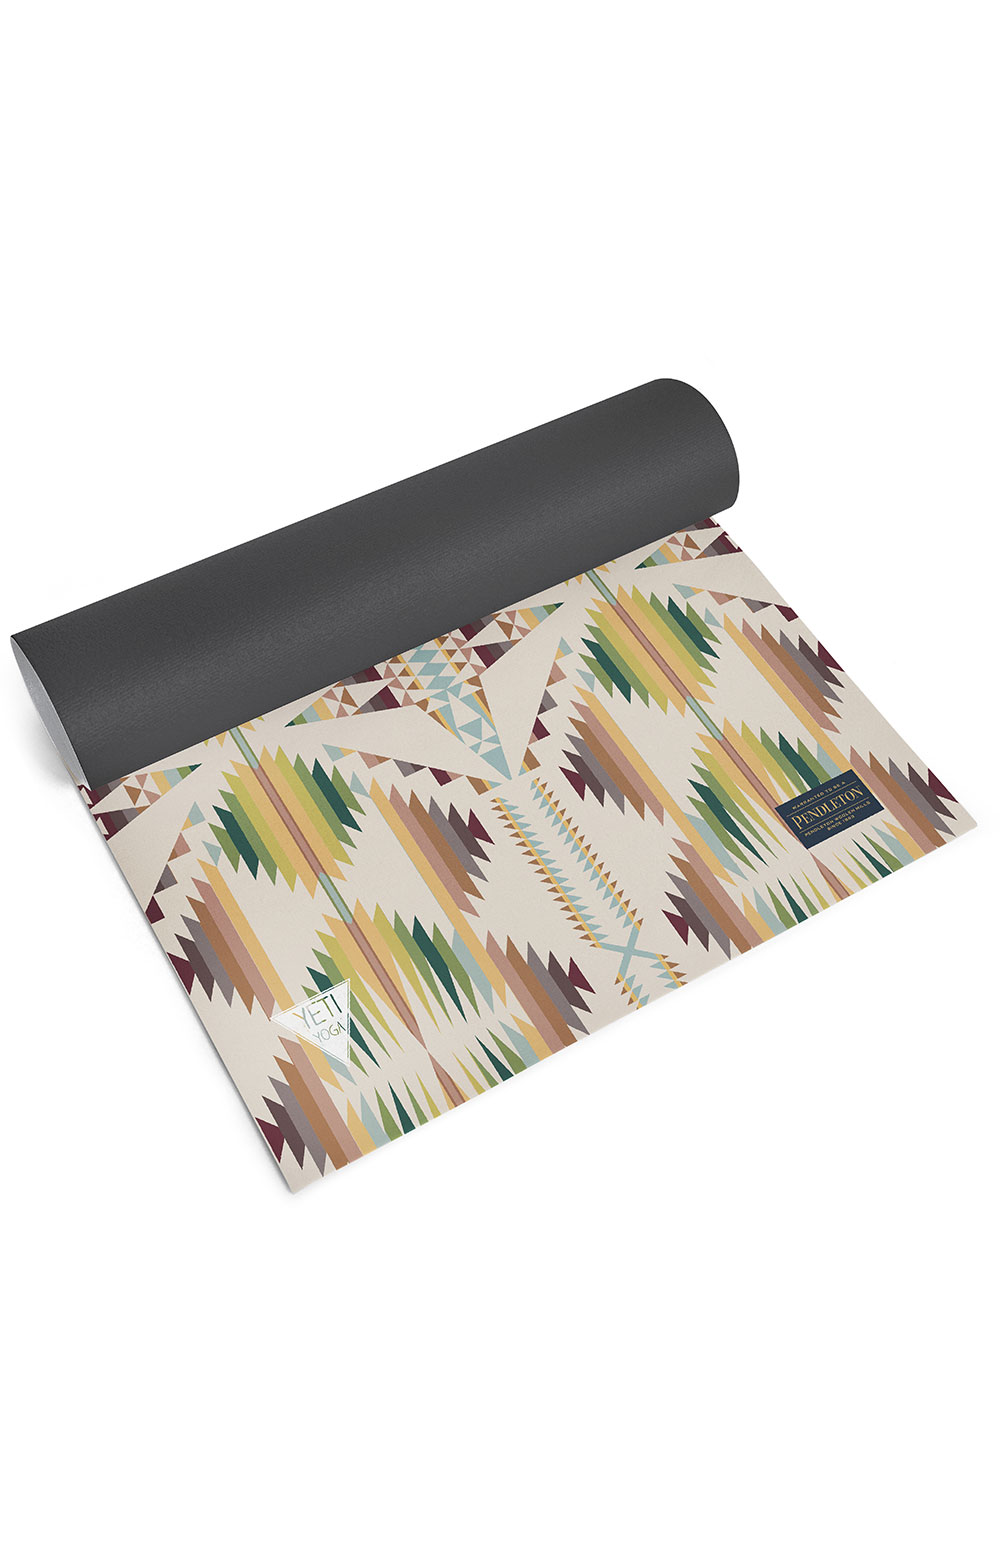 Yoga Mat - Falcon Cove Sunset